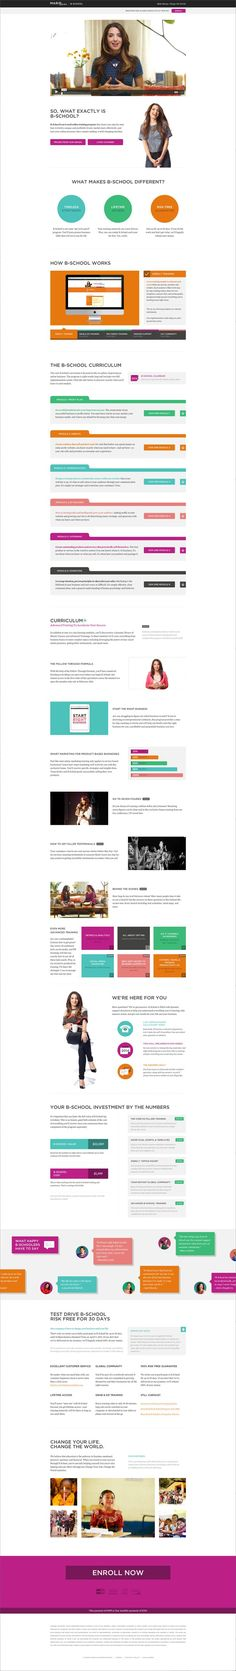 Landing Page Templates Lead Magnets \ Landing Pages Pinterest - lpo template word